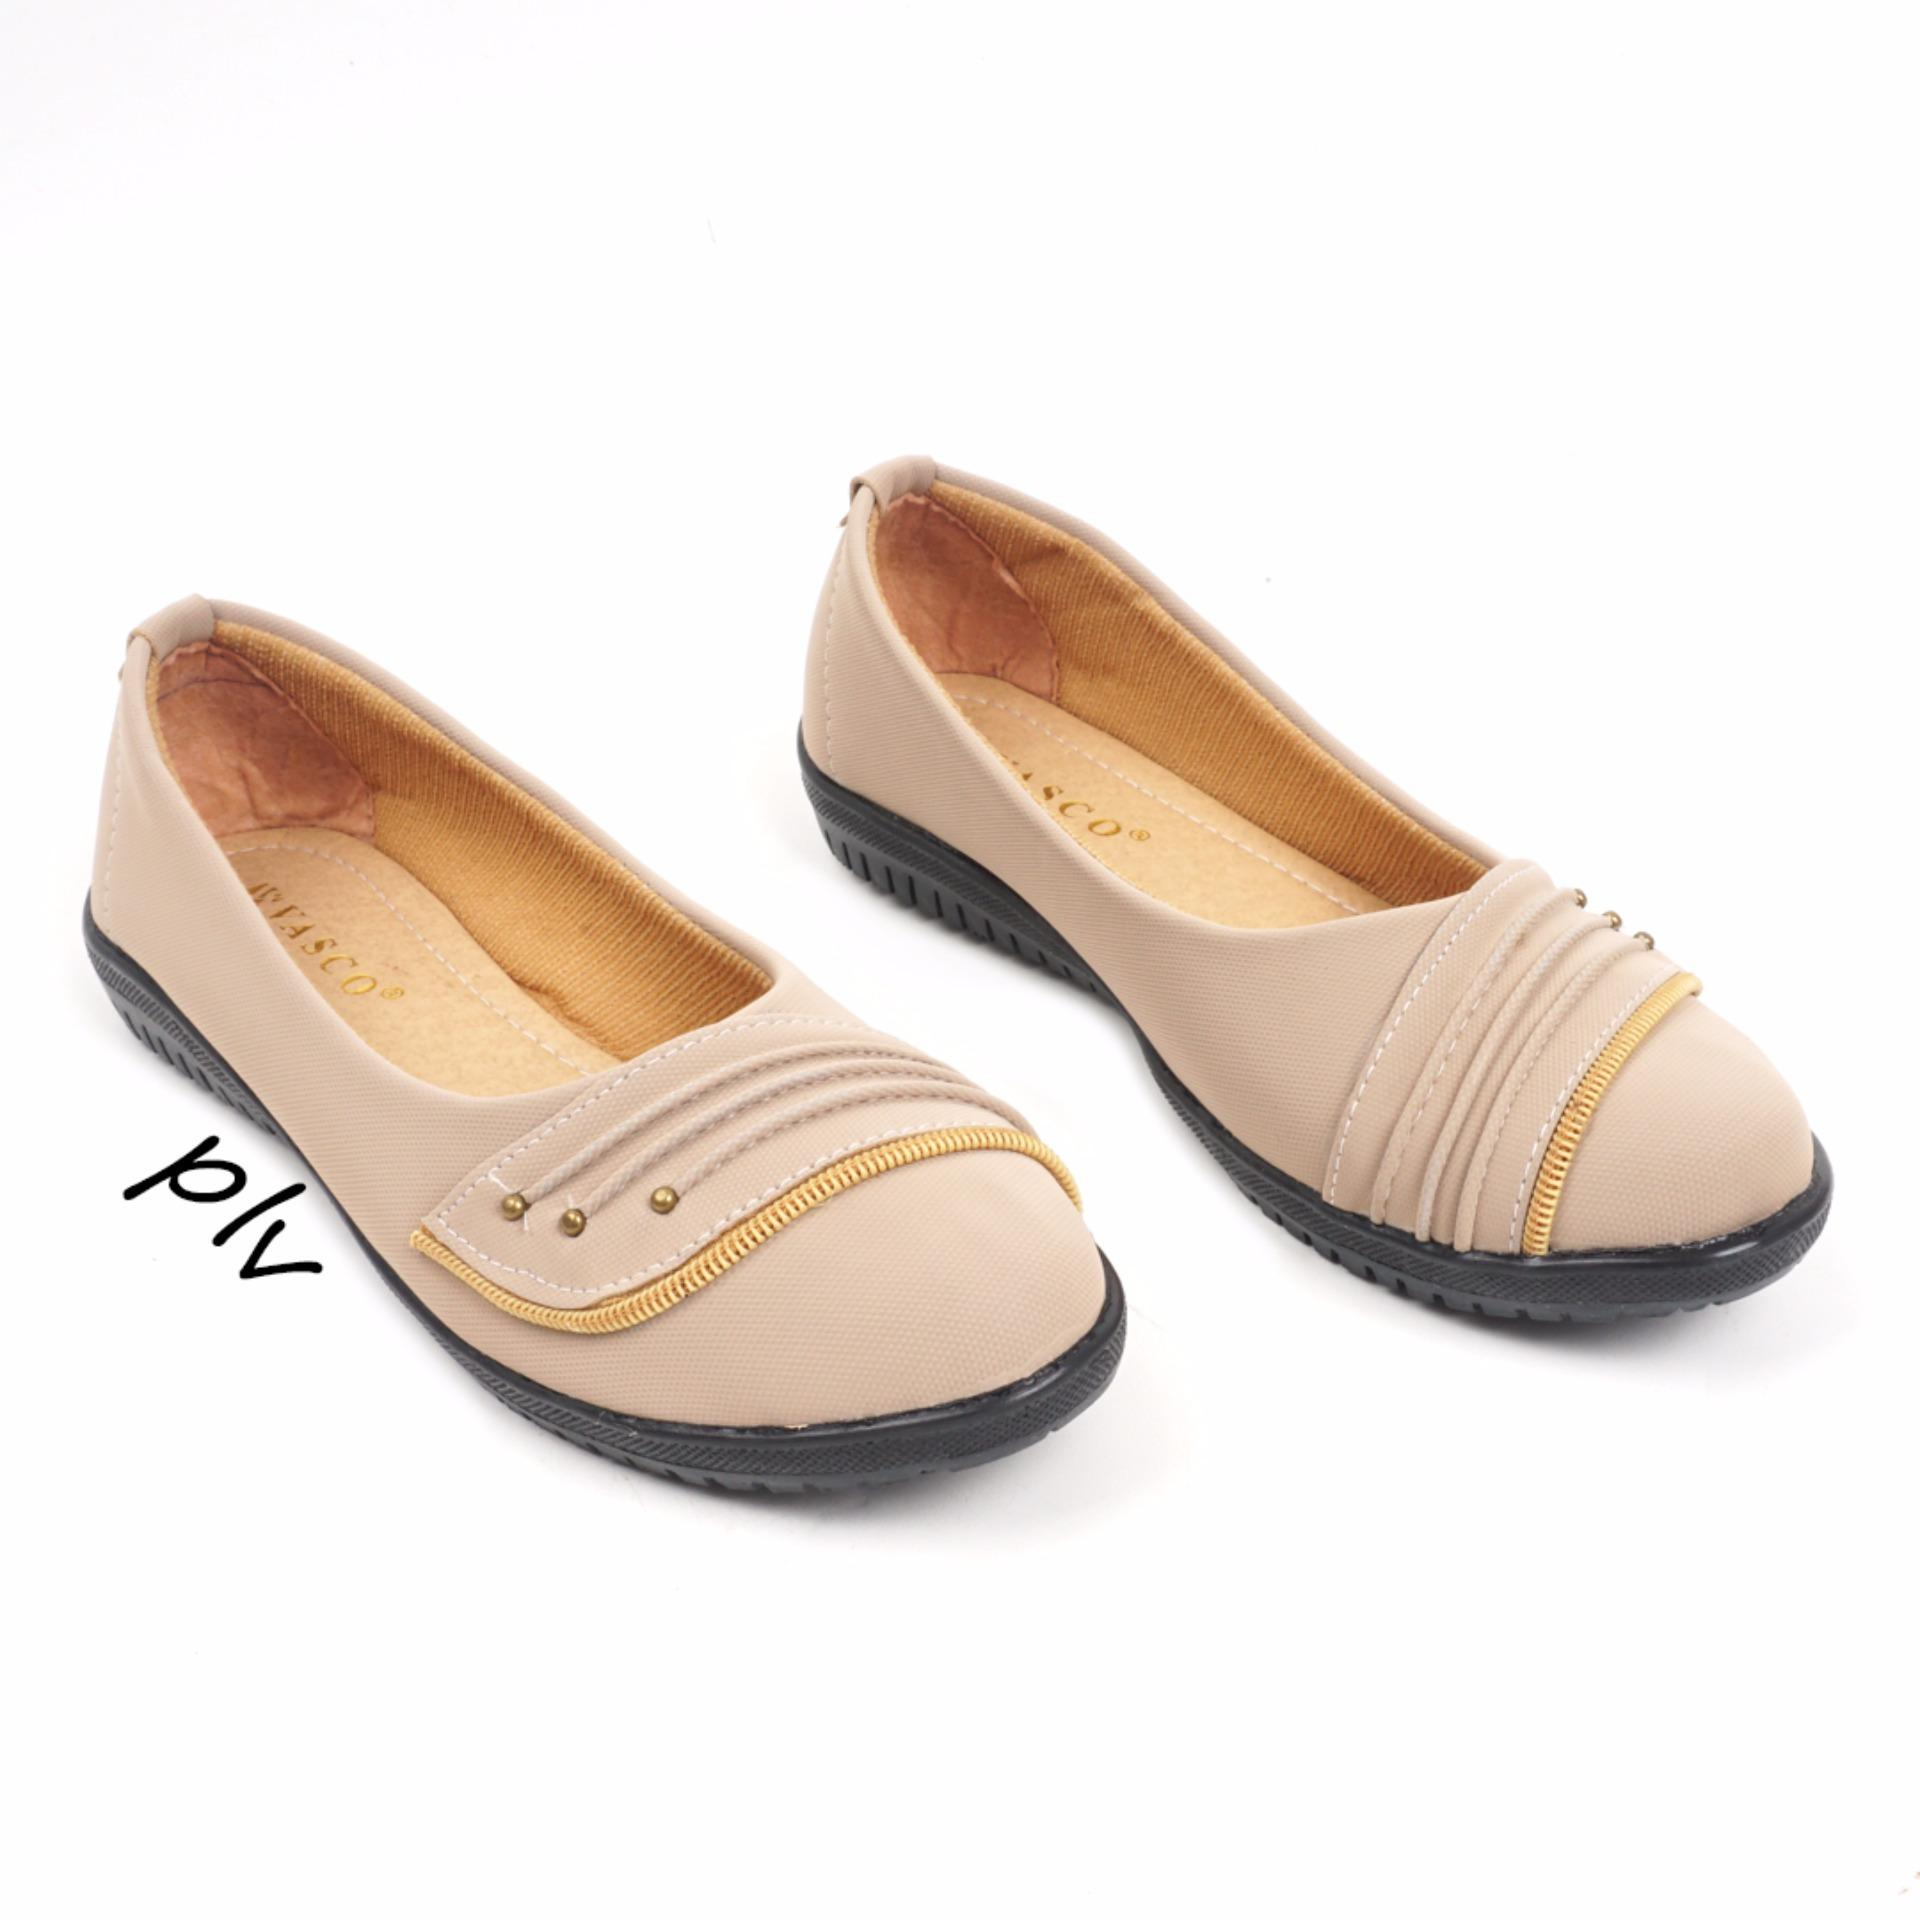 Pluvia Sepatu Flat Shoes Loafers Tm02 Cream Asli